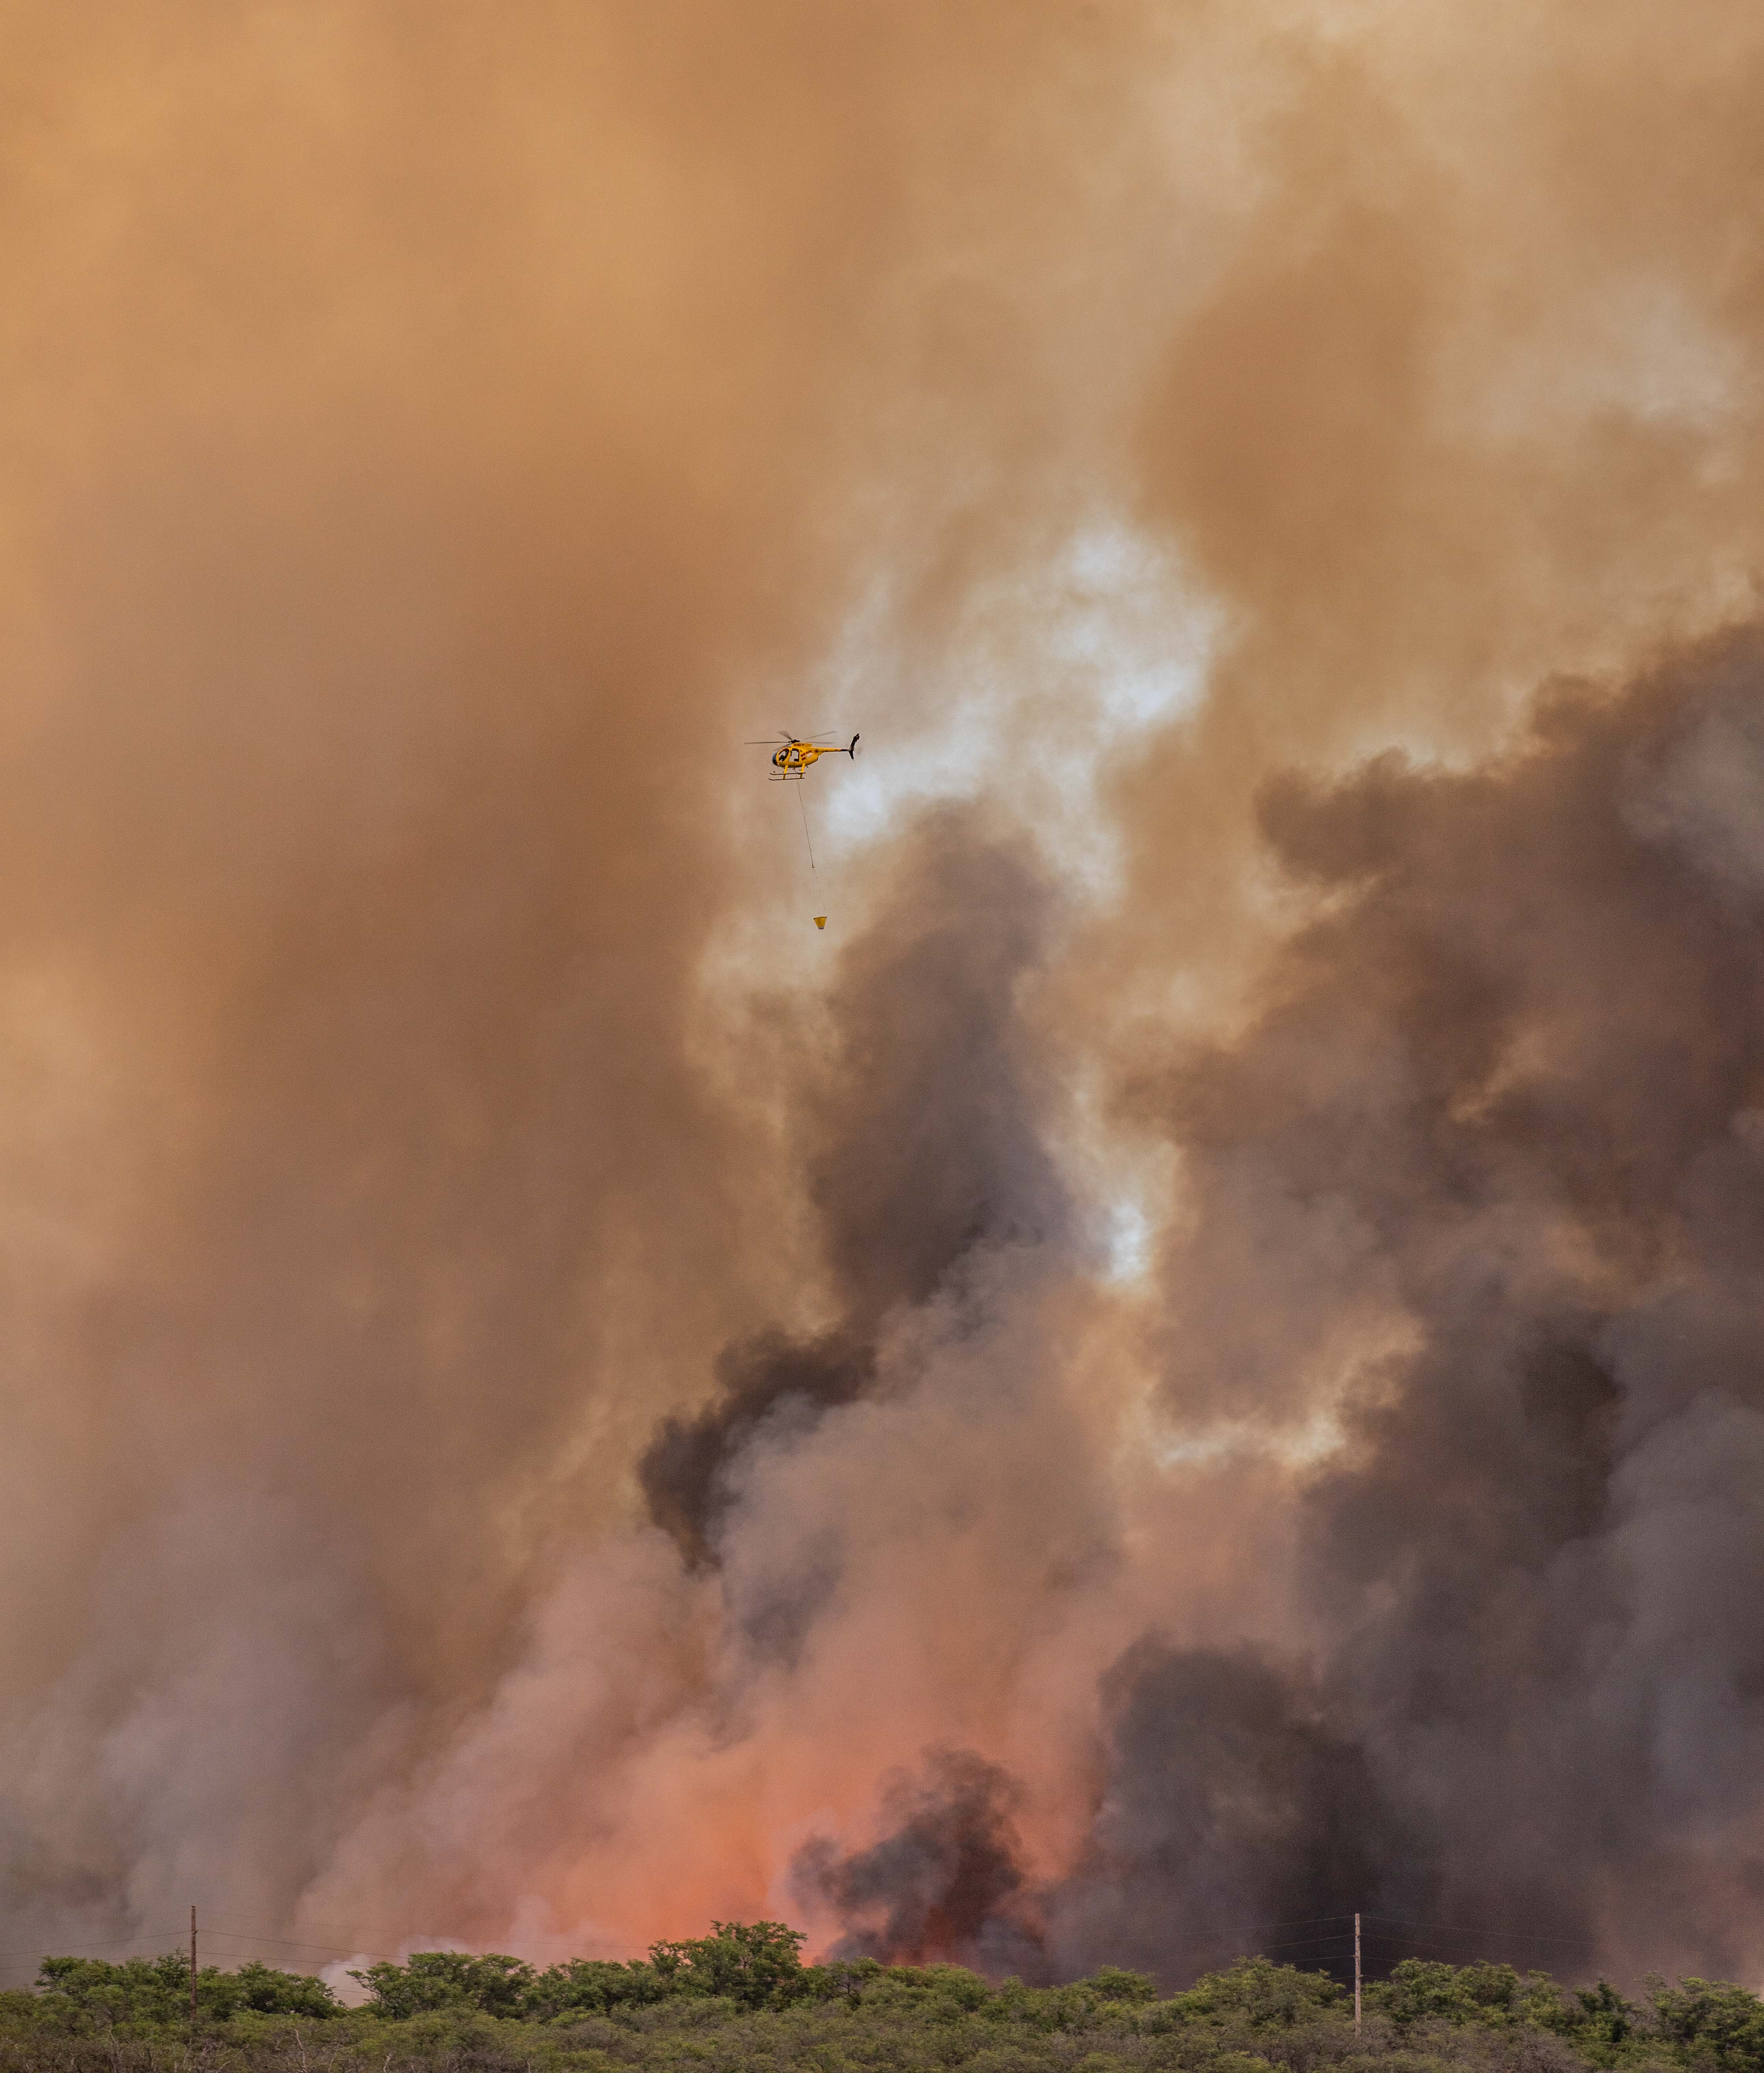 Health Recommendations to Protect Against Smoke from Maui Wildfire